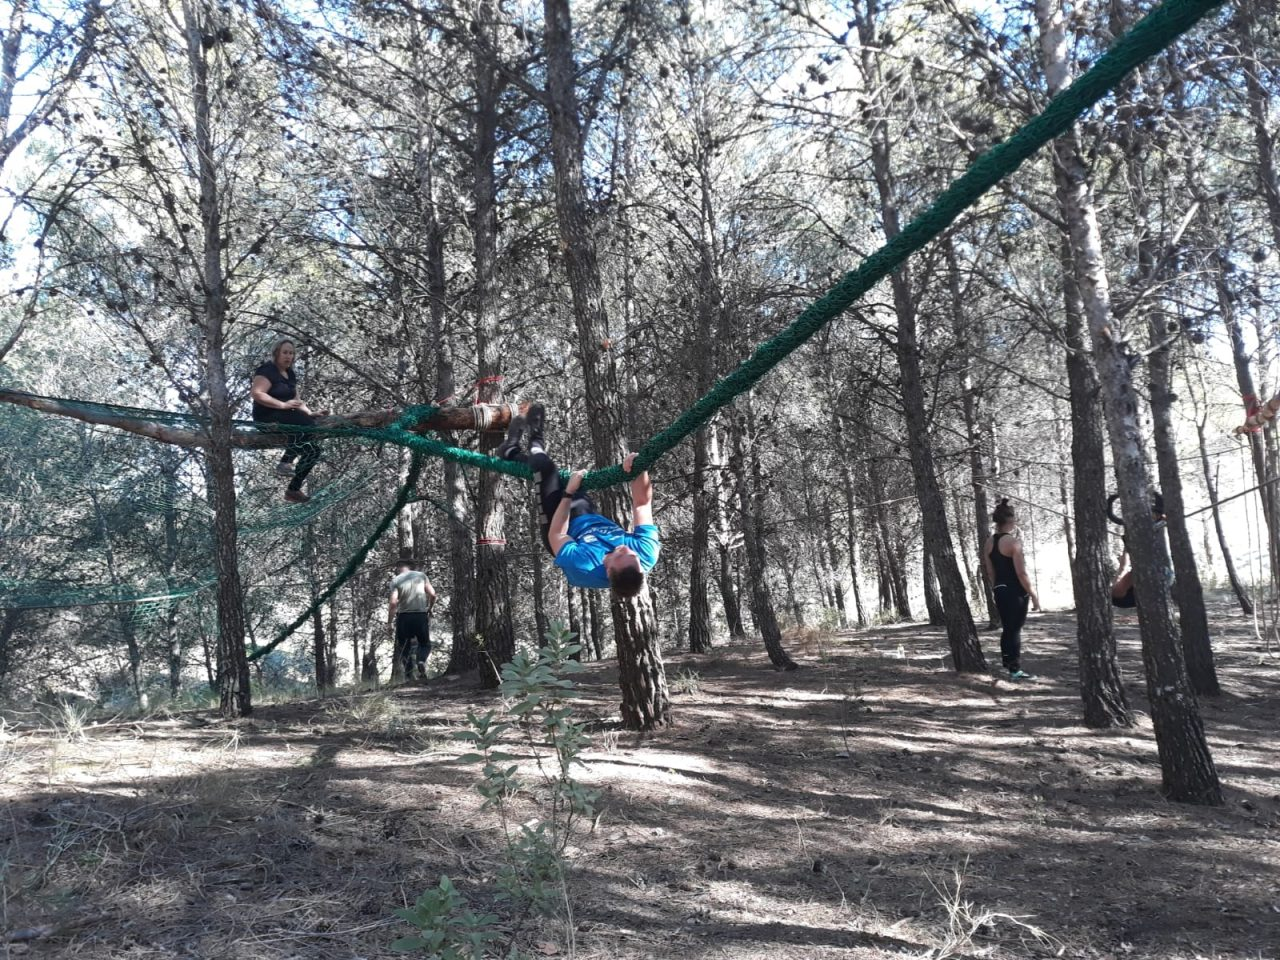 apenhang tijdens survivalrun in Spanje